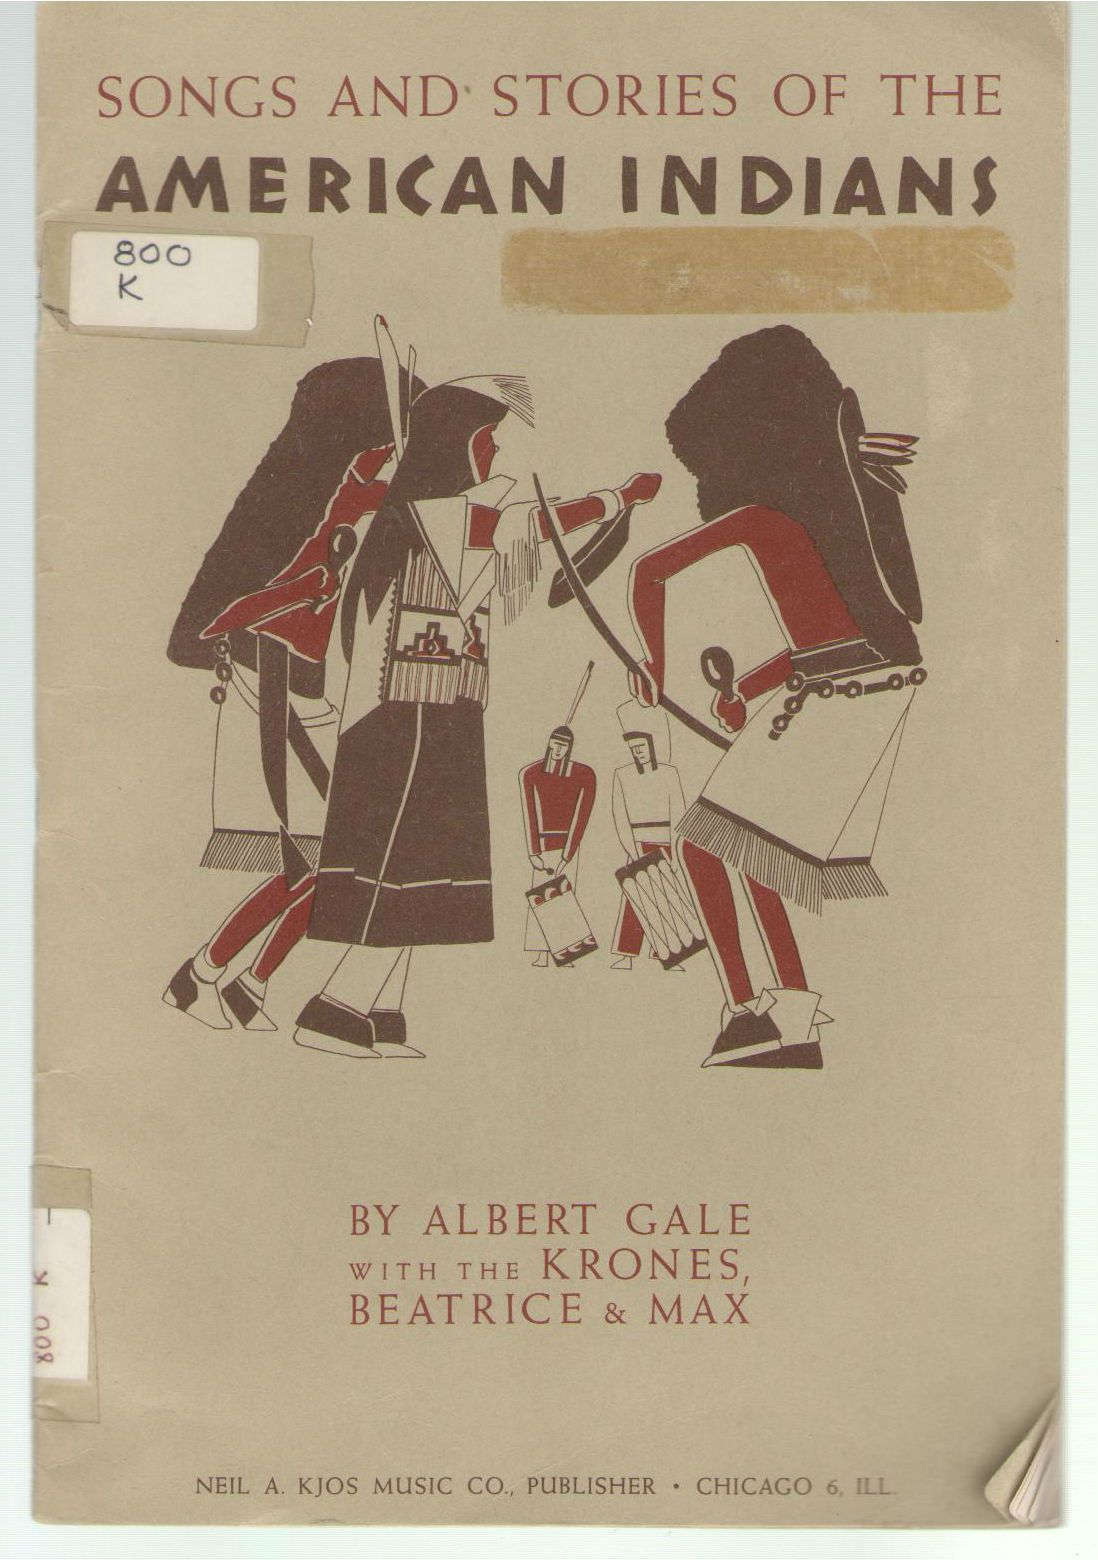 Songs and stories of the American Indians / recorded and harmonized by Albert Gale, Gale, Albert